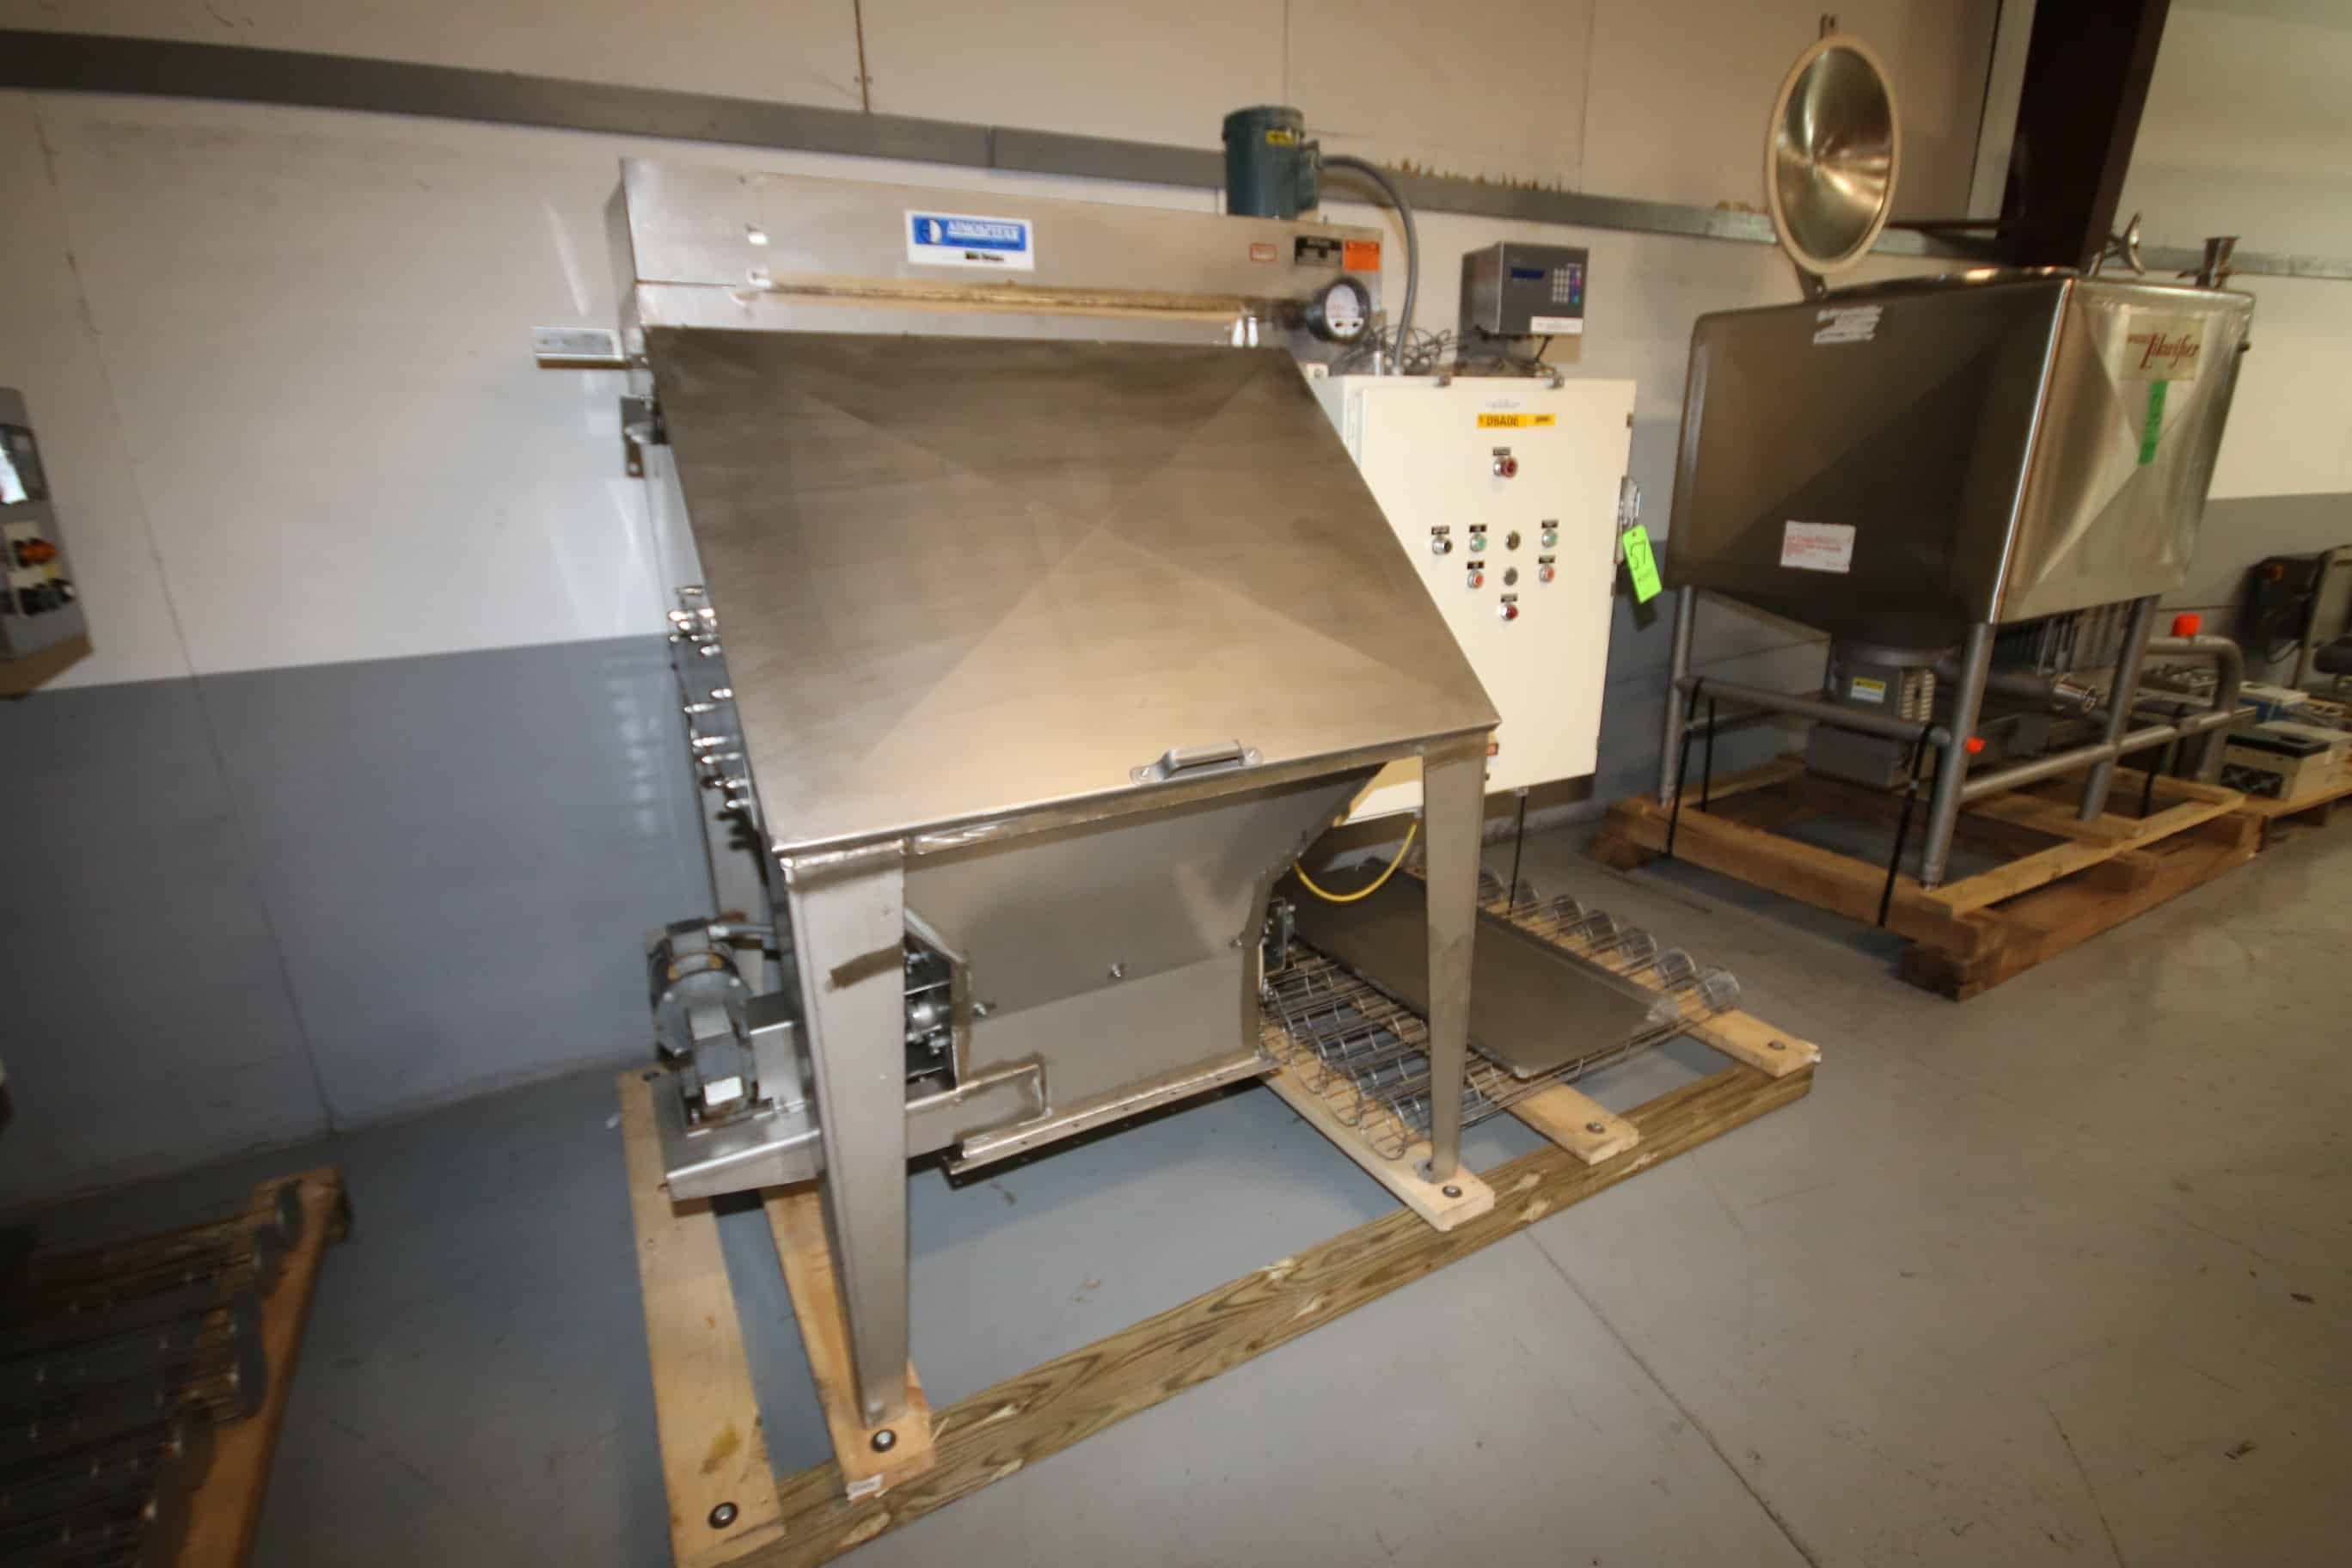 "Young Industries S/S Skid-Mounted Self-Contained Filter/Bag Dump Station with Onboard 8-Bag Dust Collection System, Size 42-8, Model UNITMI-1010, Shop #12618-1, S/N FBD-1549, Aprox. 45"" Opening x 24"" W x 28"" Deep, Safety Guard, Screen Conveyor Discharge, Onboard Mettler Toledo Lynx Scale with Digital Read-Out, Controls including Allen Bradley 30 Amp Line Terminal Guard, Cat #1494V-DS30, (2) Square D Nema Size 1 Starters, Fuses, Industrial Control 1 KVA Transformer, 480 V, 3 Phase, Reliance 1.5 hp Motor, 3450 RPM and Baldor .75 hp Motor, 1725 RPM, 208-230/460 V, 3 Phase with Winsmith Model 920MWT Speed Reducer with 30 Ratio"